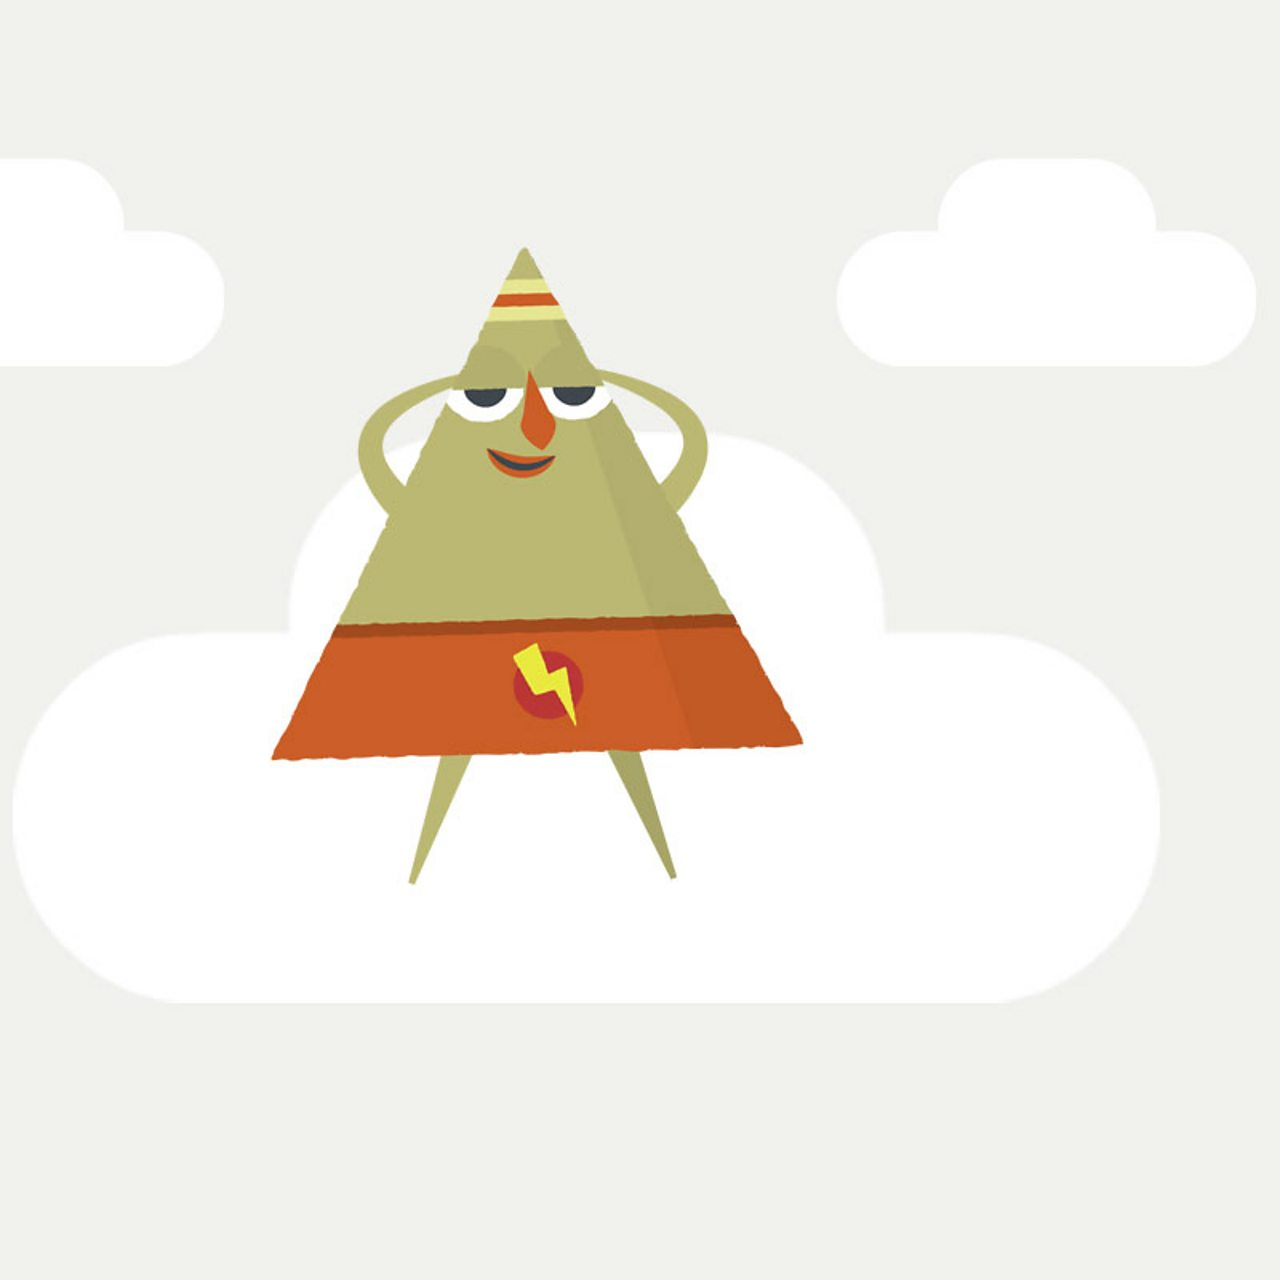 hight resolution of triangle character floating on cloud